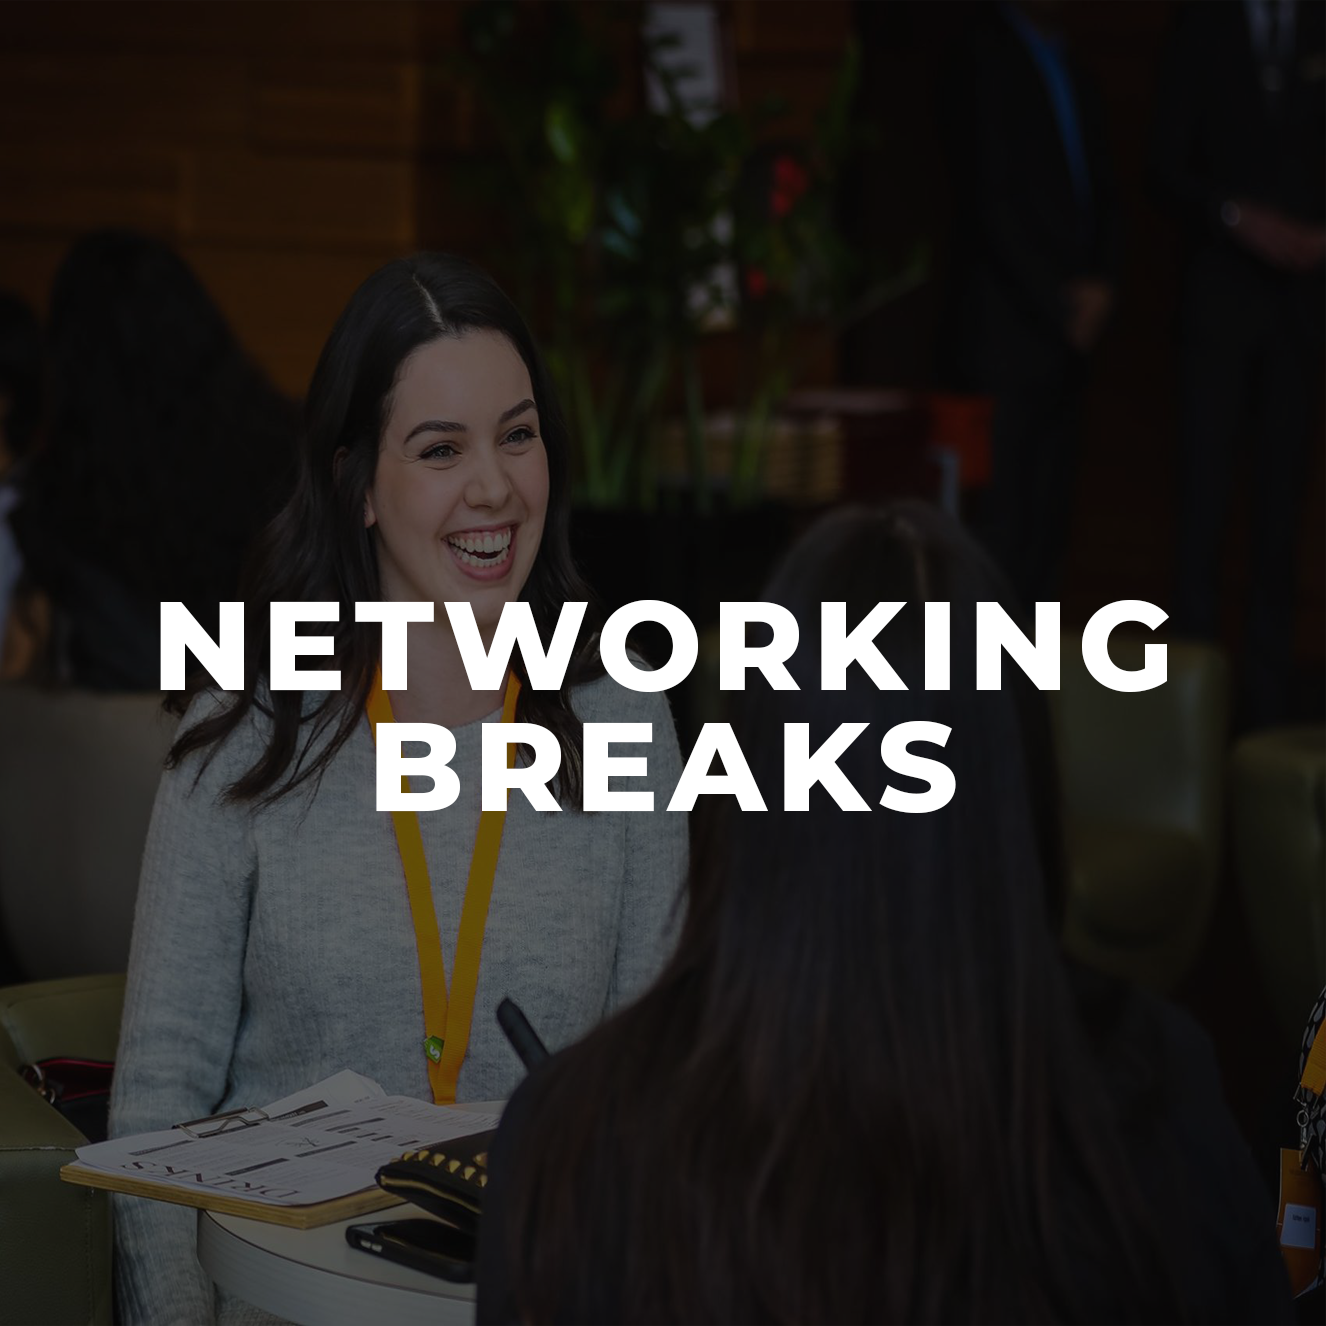 Each year, Legacy brings in 800+ like-minded students from all-across Canada. Facilitate meaningful conversations by networking with good company, and learn from one another.